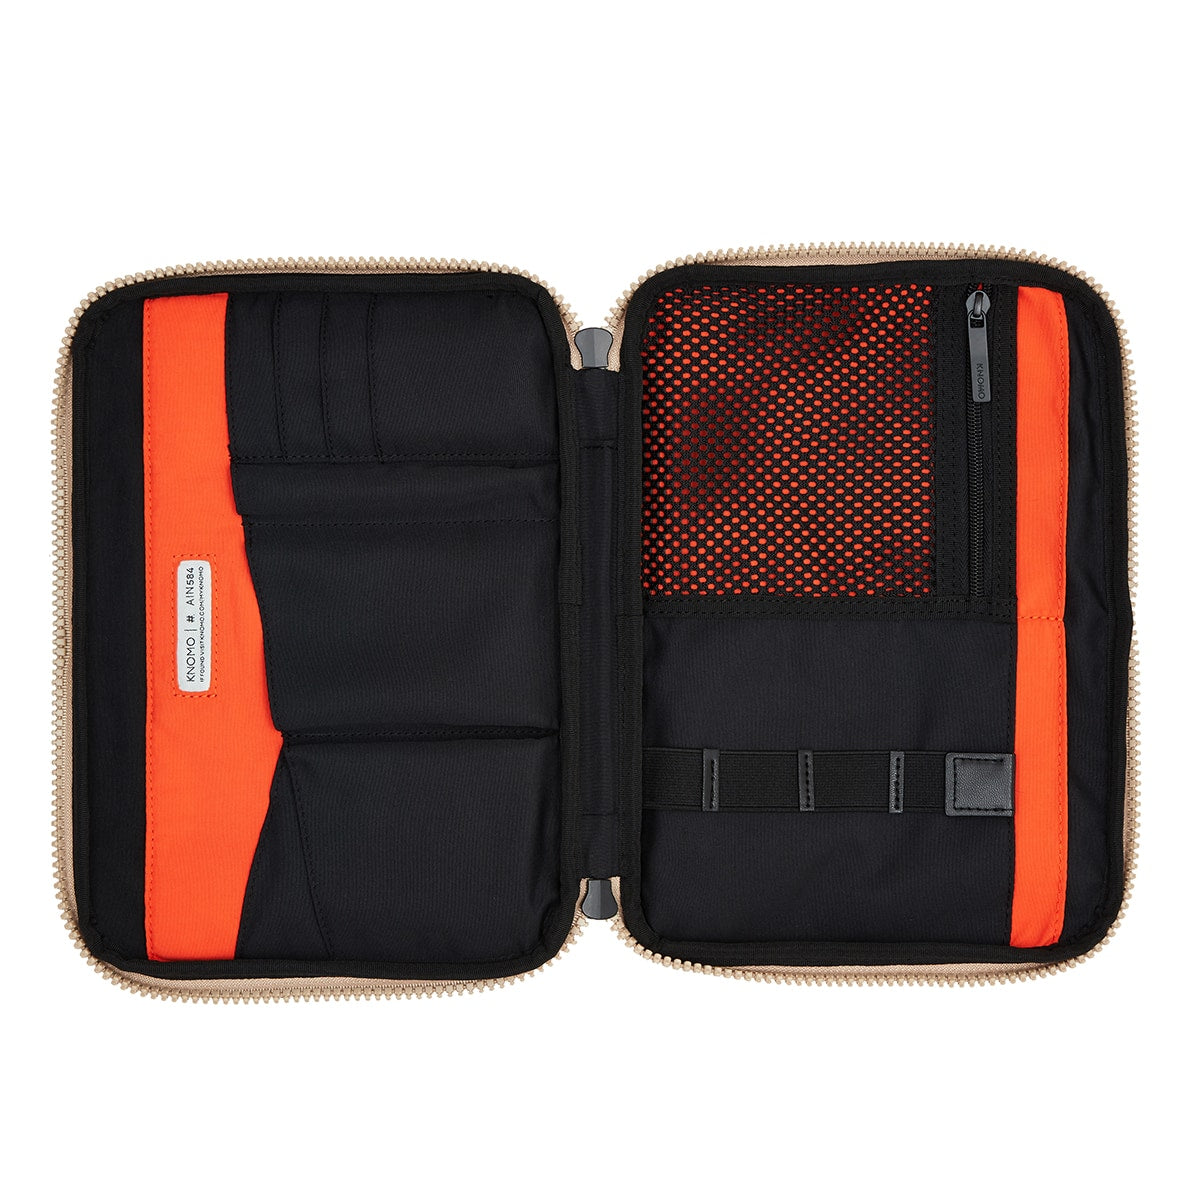 "Thames Knomad organizer - 10.5"" Tech Organizer For Everyday -  